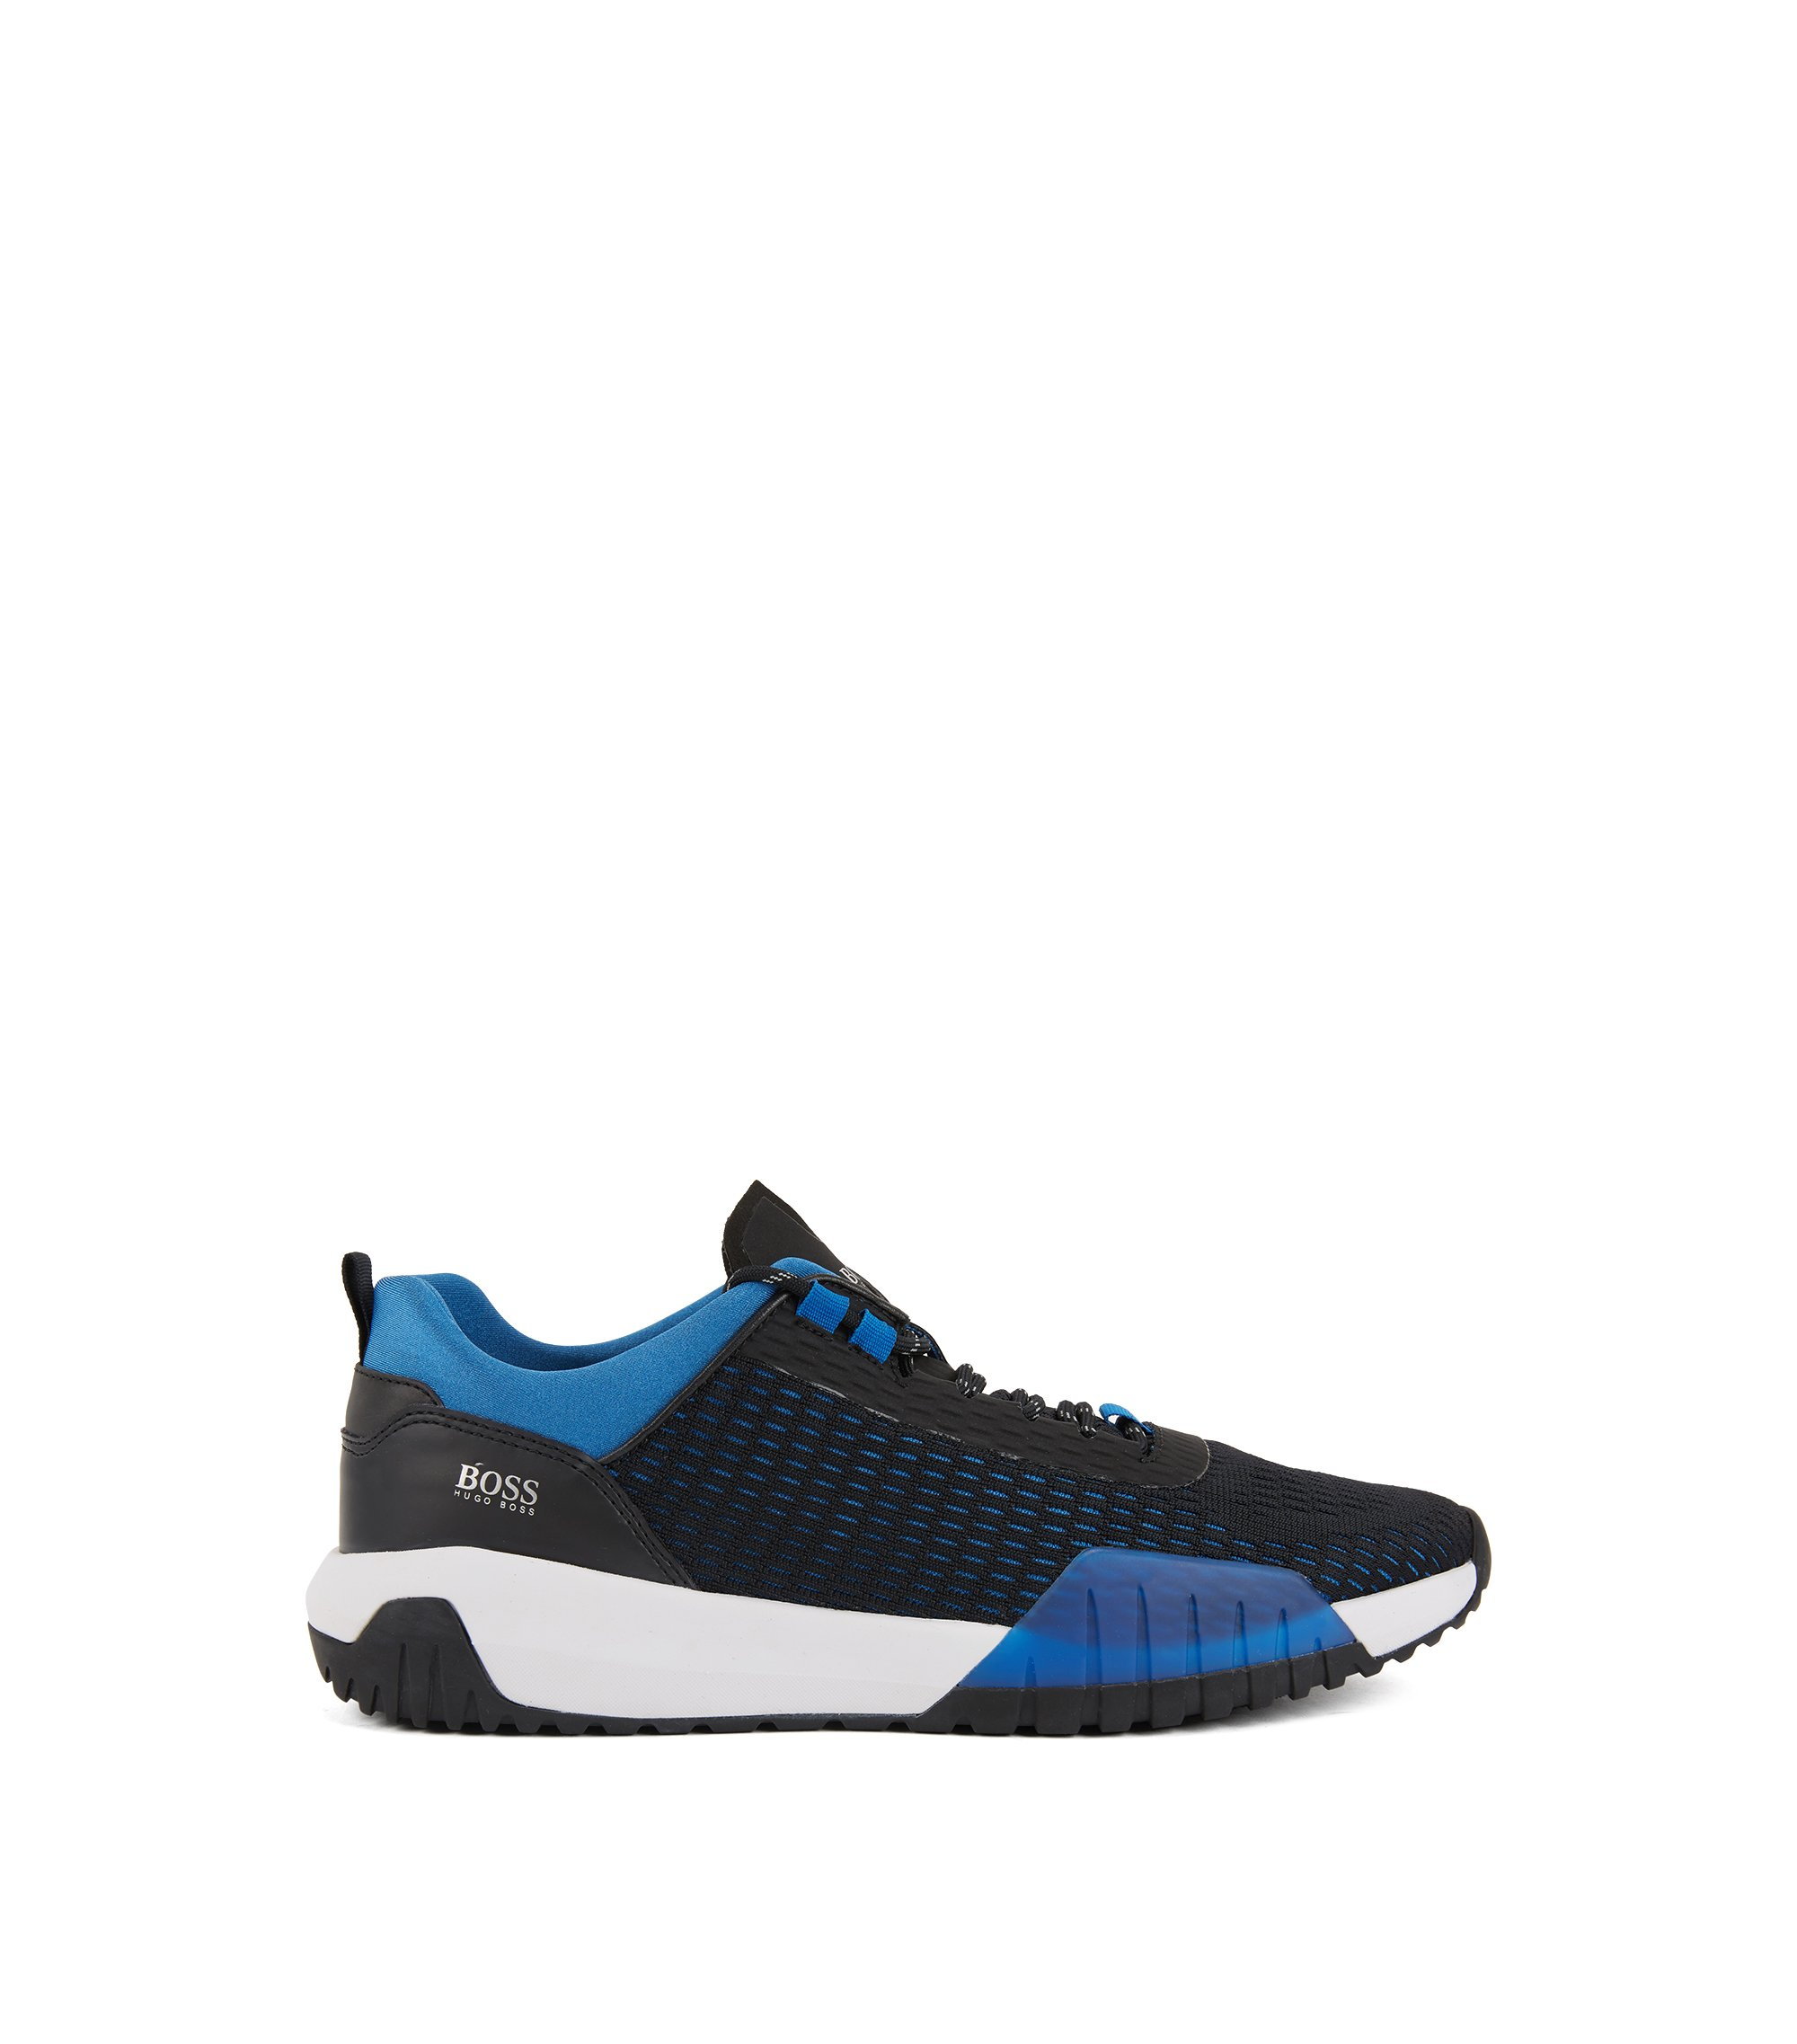 Running-inspired trainers with Strobel construction and reflective laces, Dark Blue